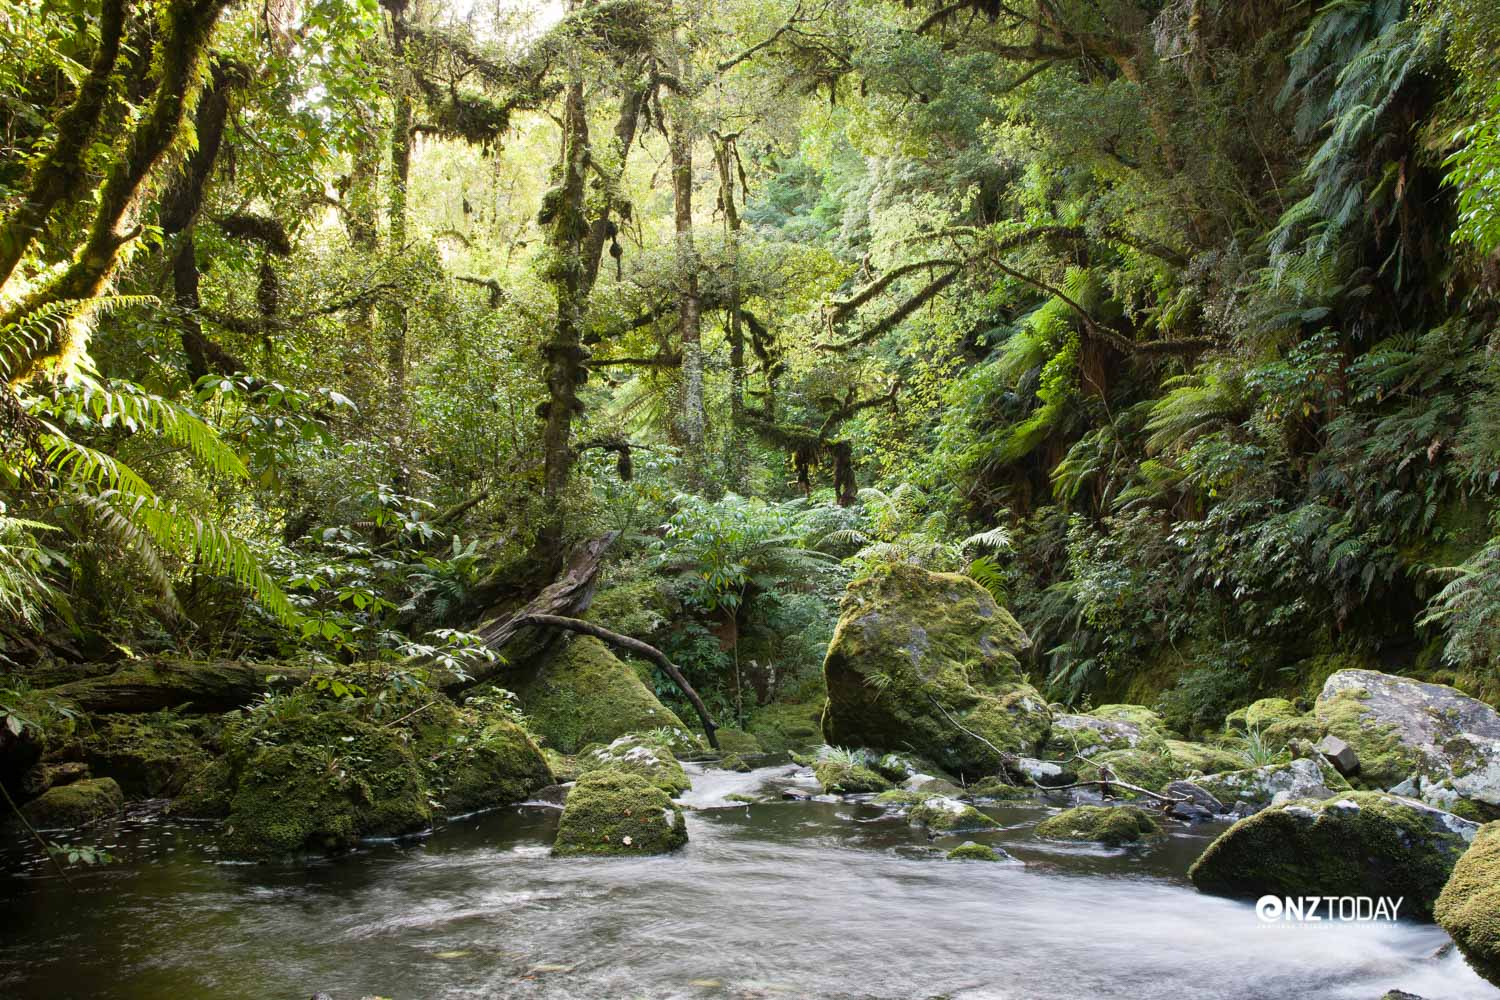 A rainforest garden surrounds the Tautuku River near the McLean Falls